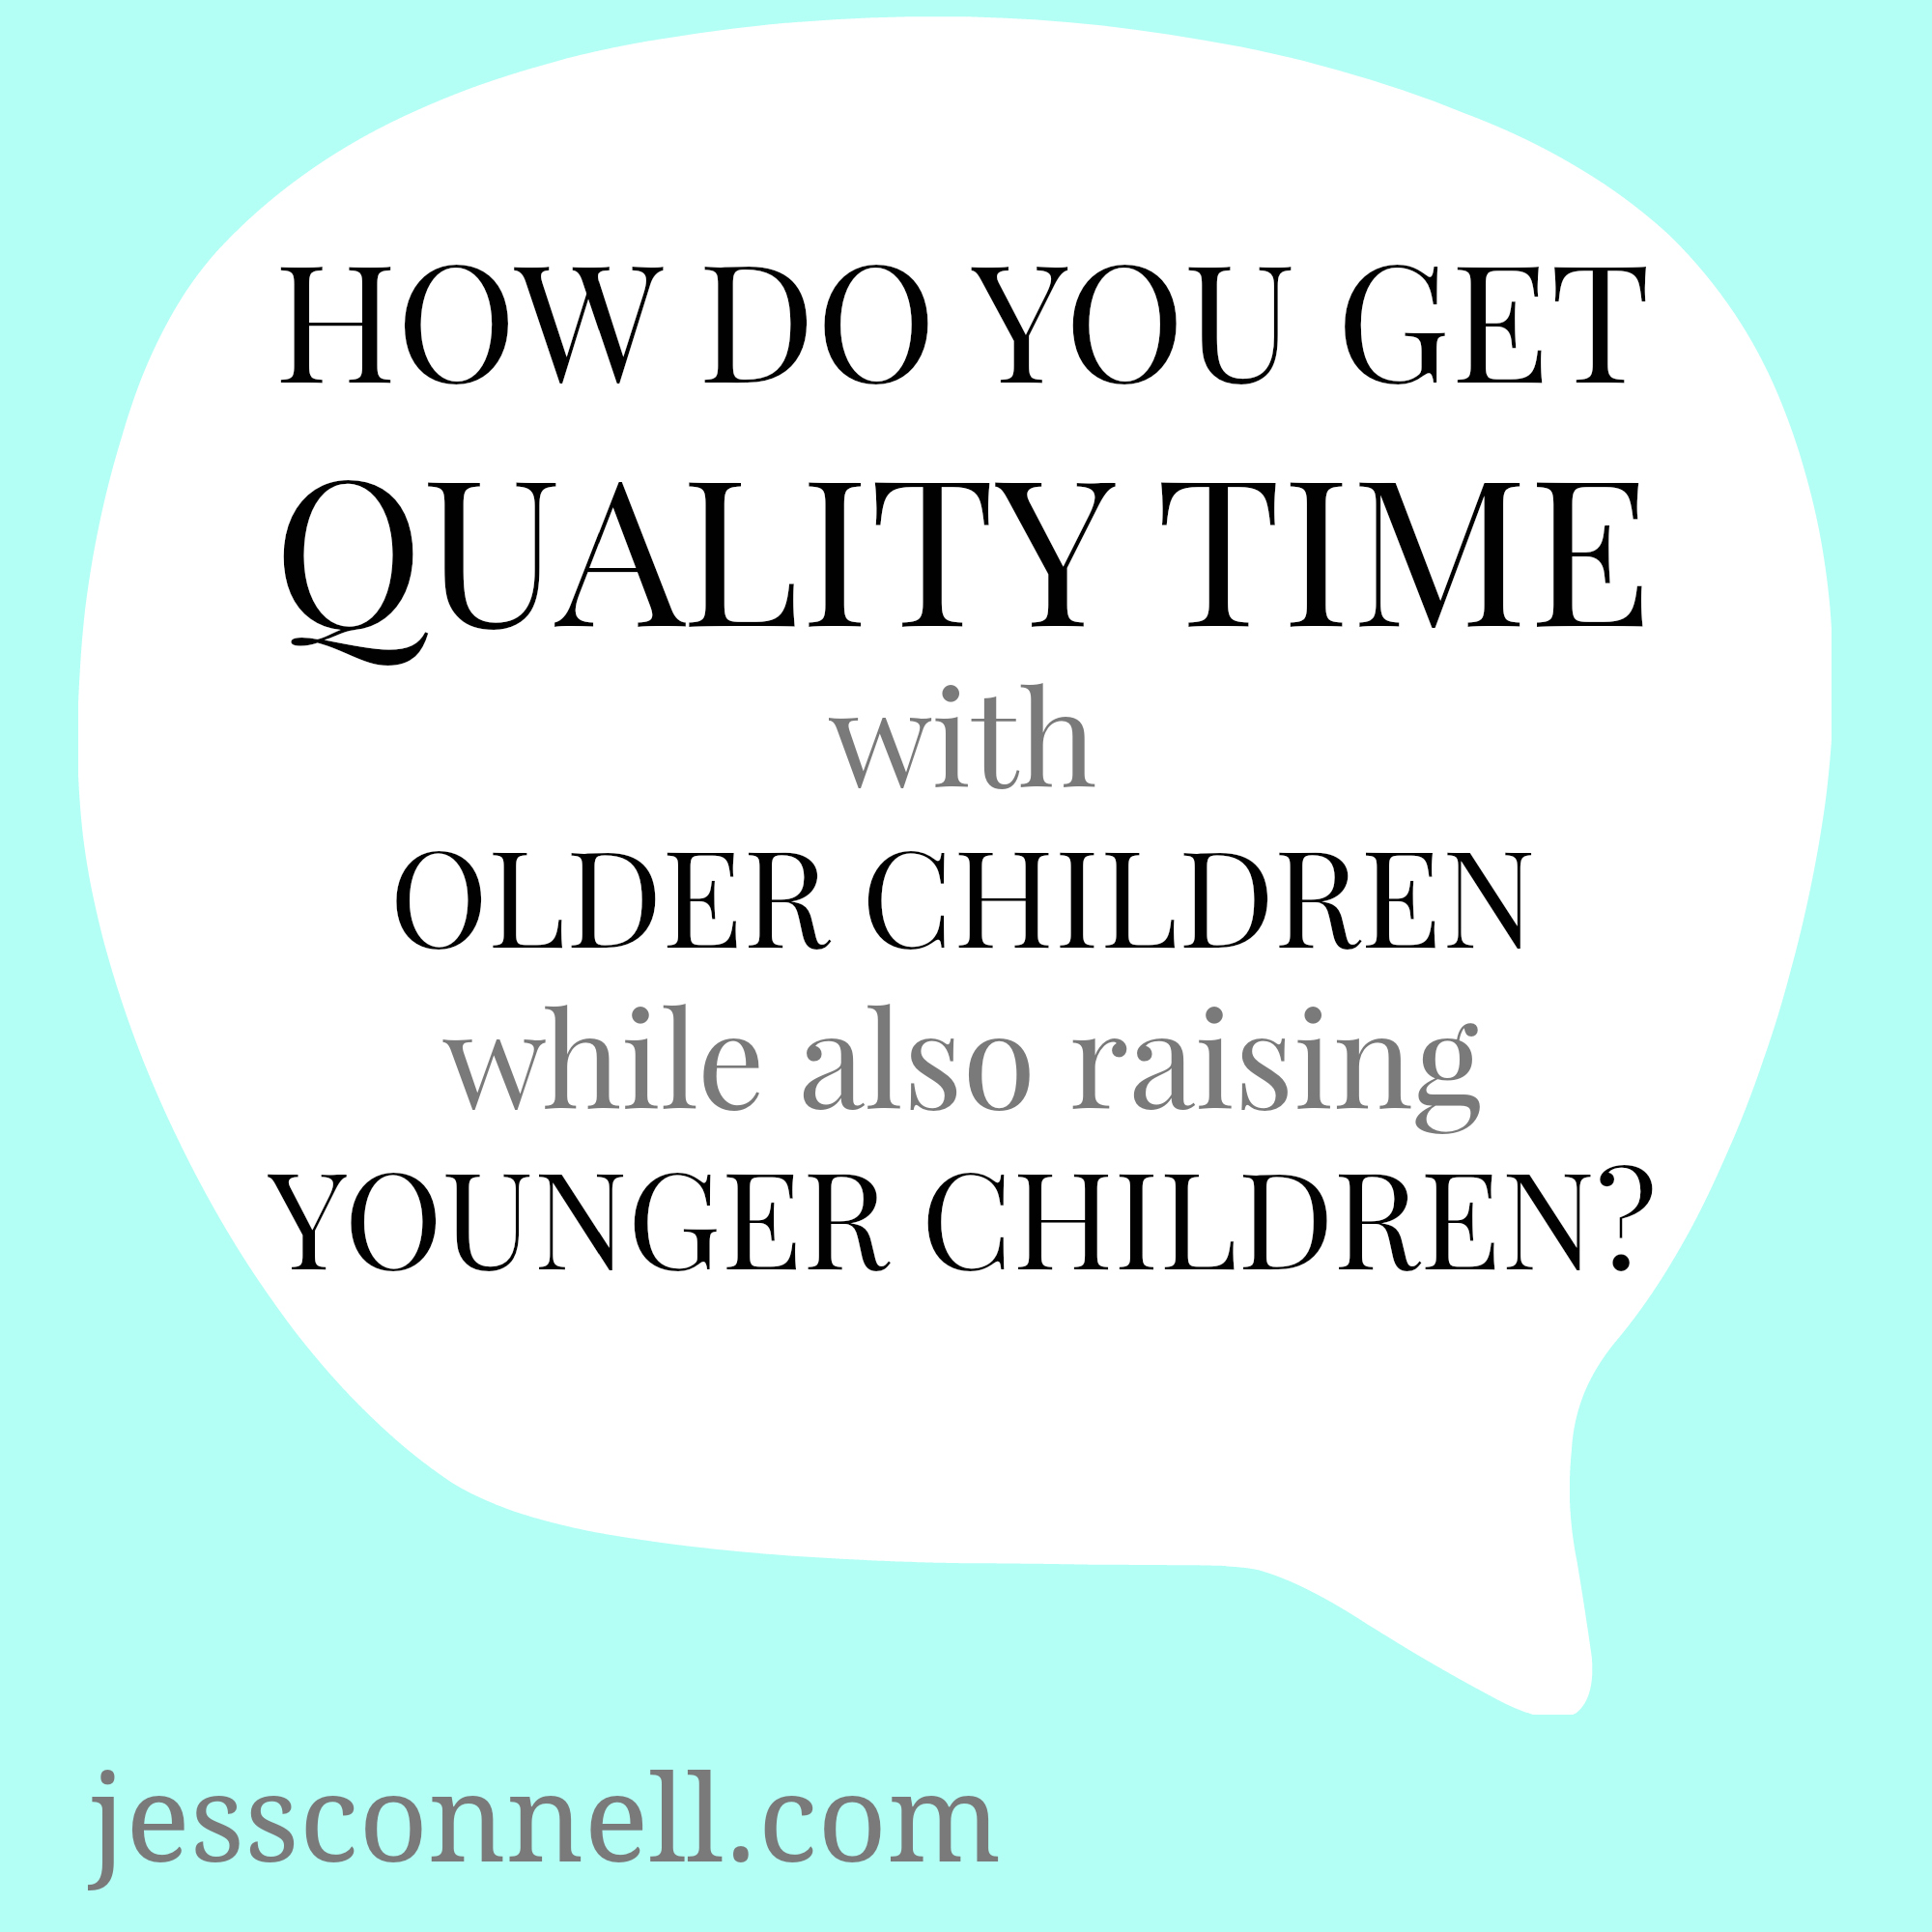 How Do You Get Quality Time With Older Children (While Also Raising Younger Children)? // jessconnell.com